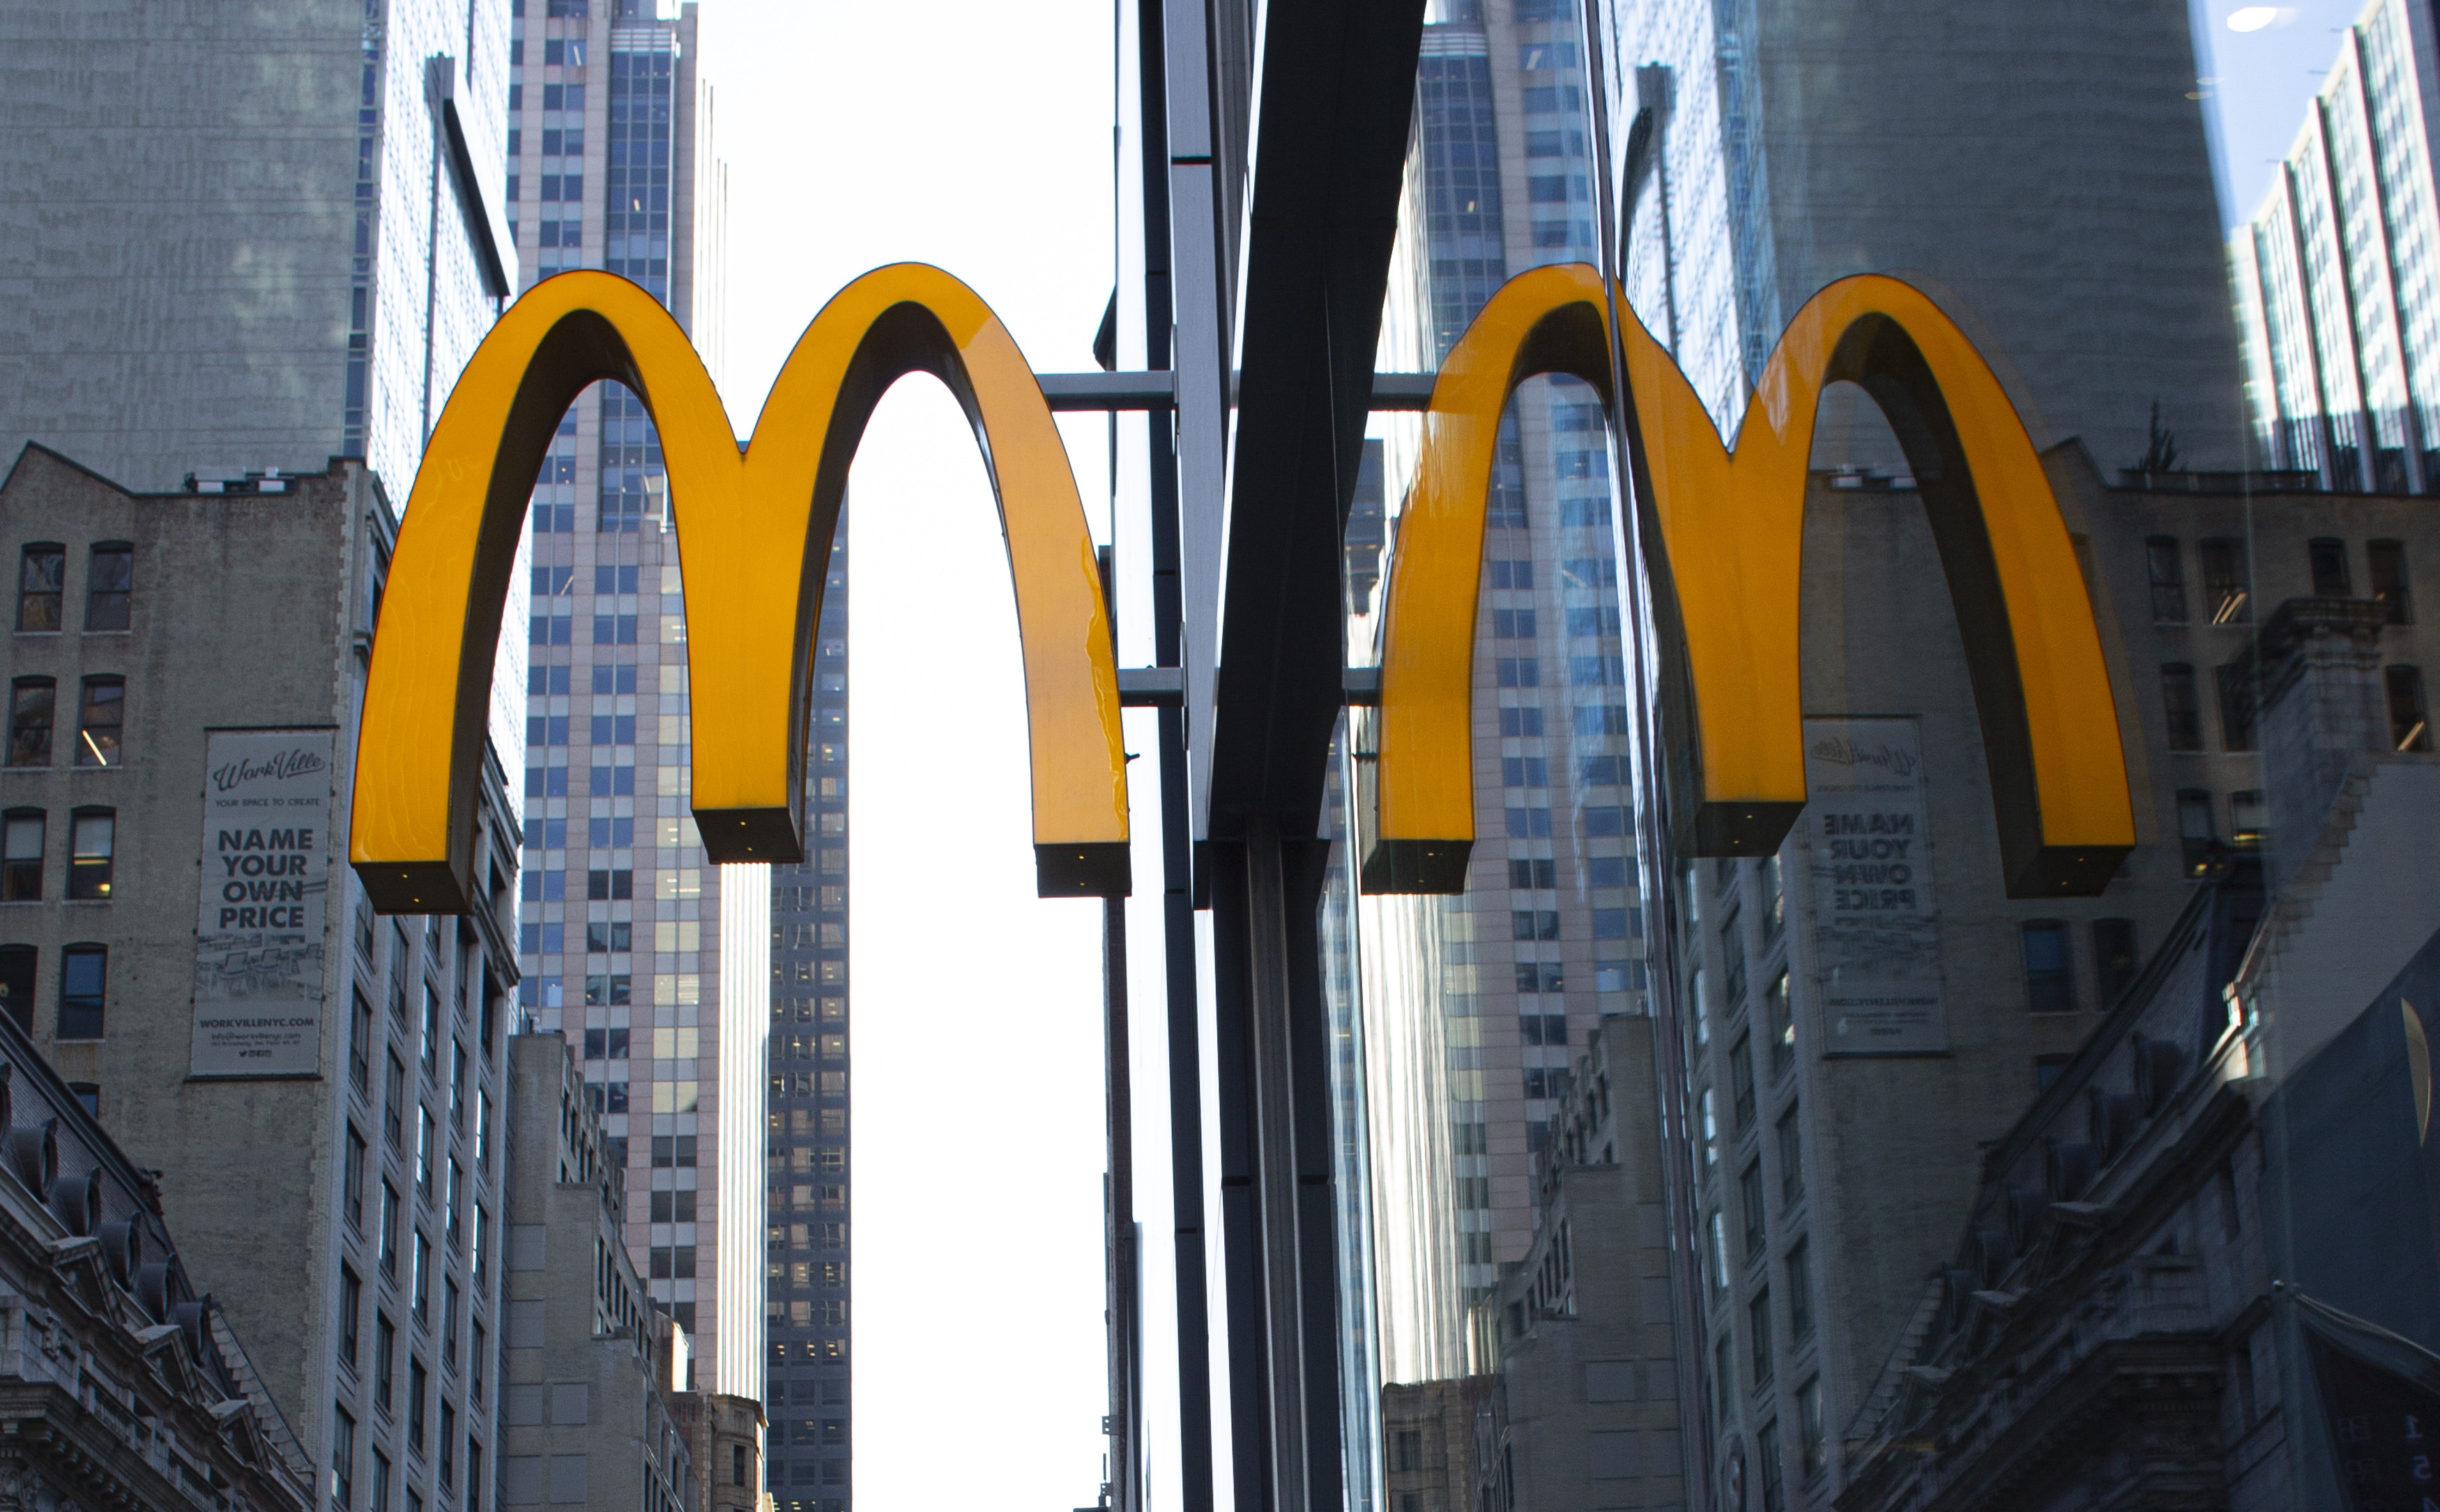 McDonald's golden arches sign in New York City.